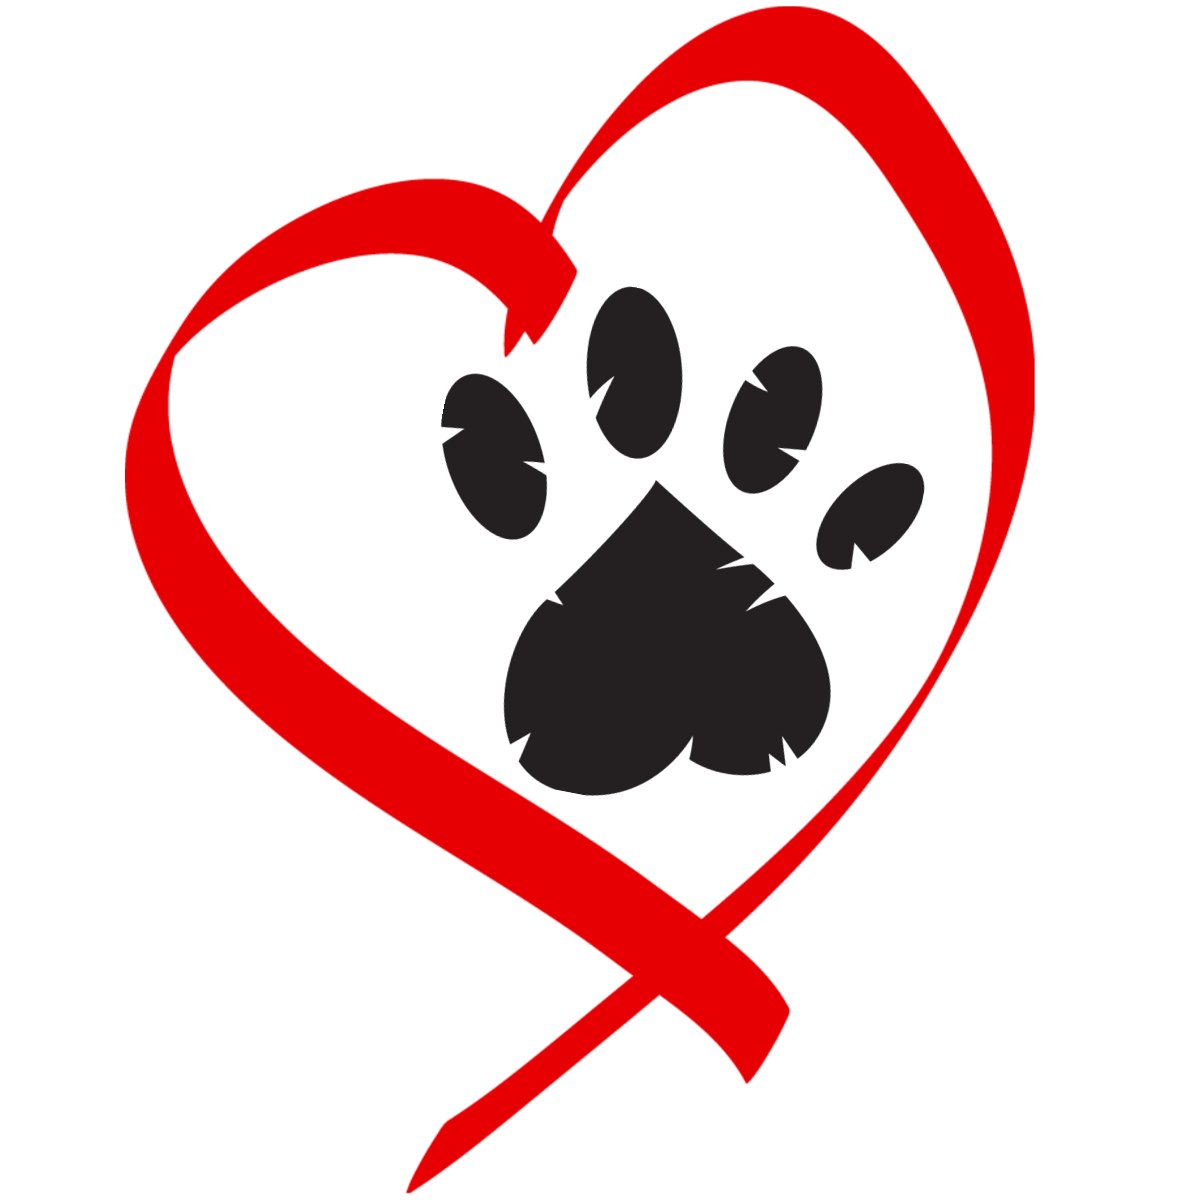 Paw & Heart! | GoGrrlZ logo idea starters | Pinterest svg download